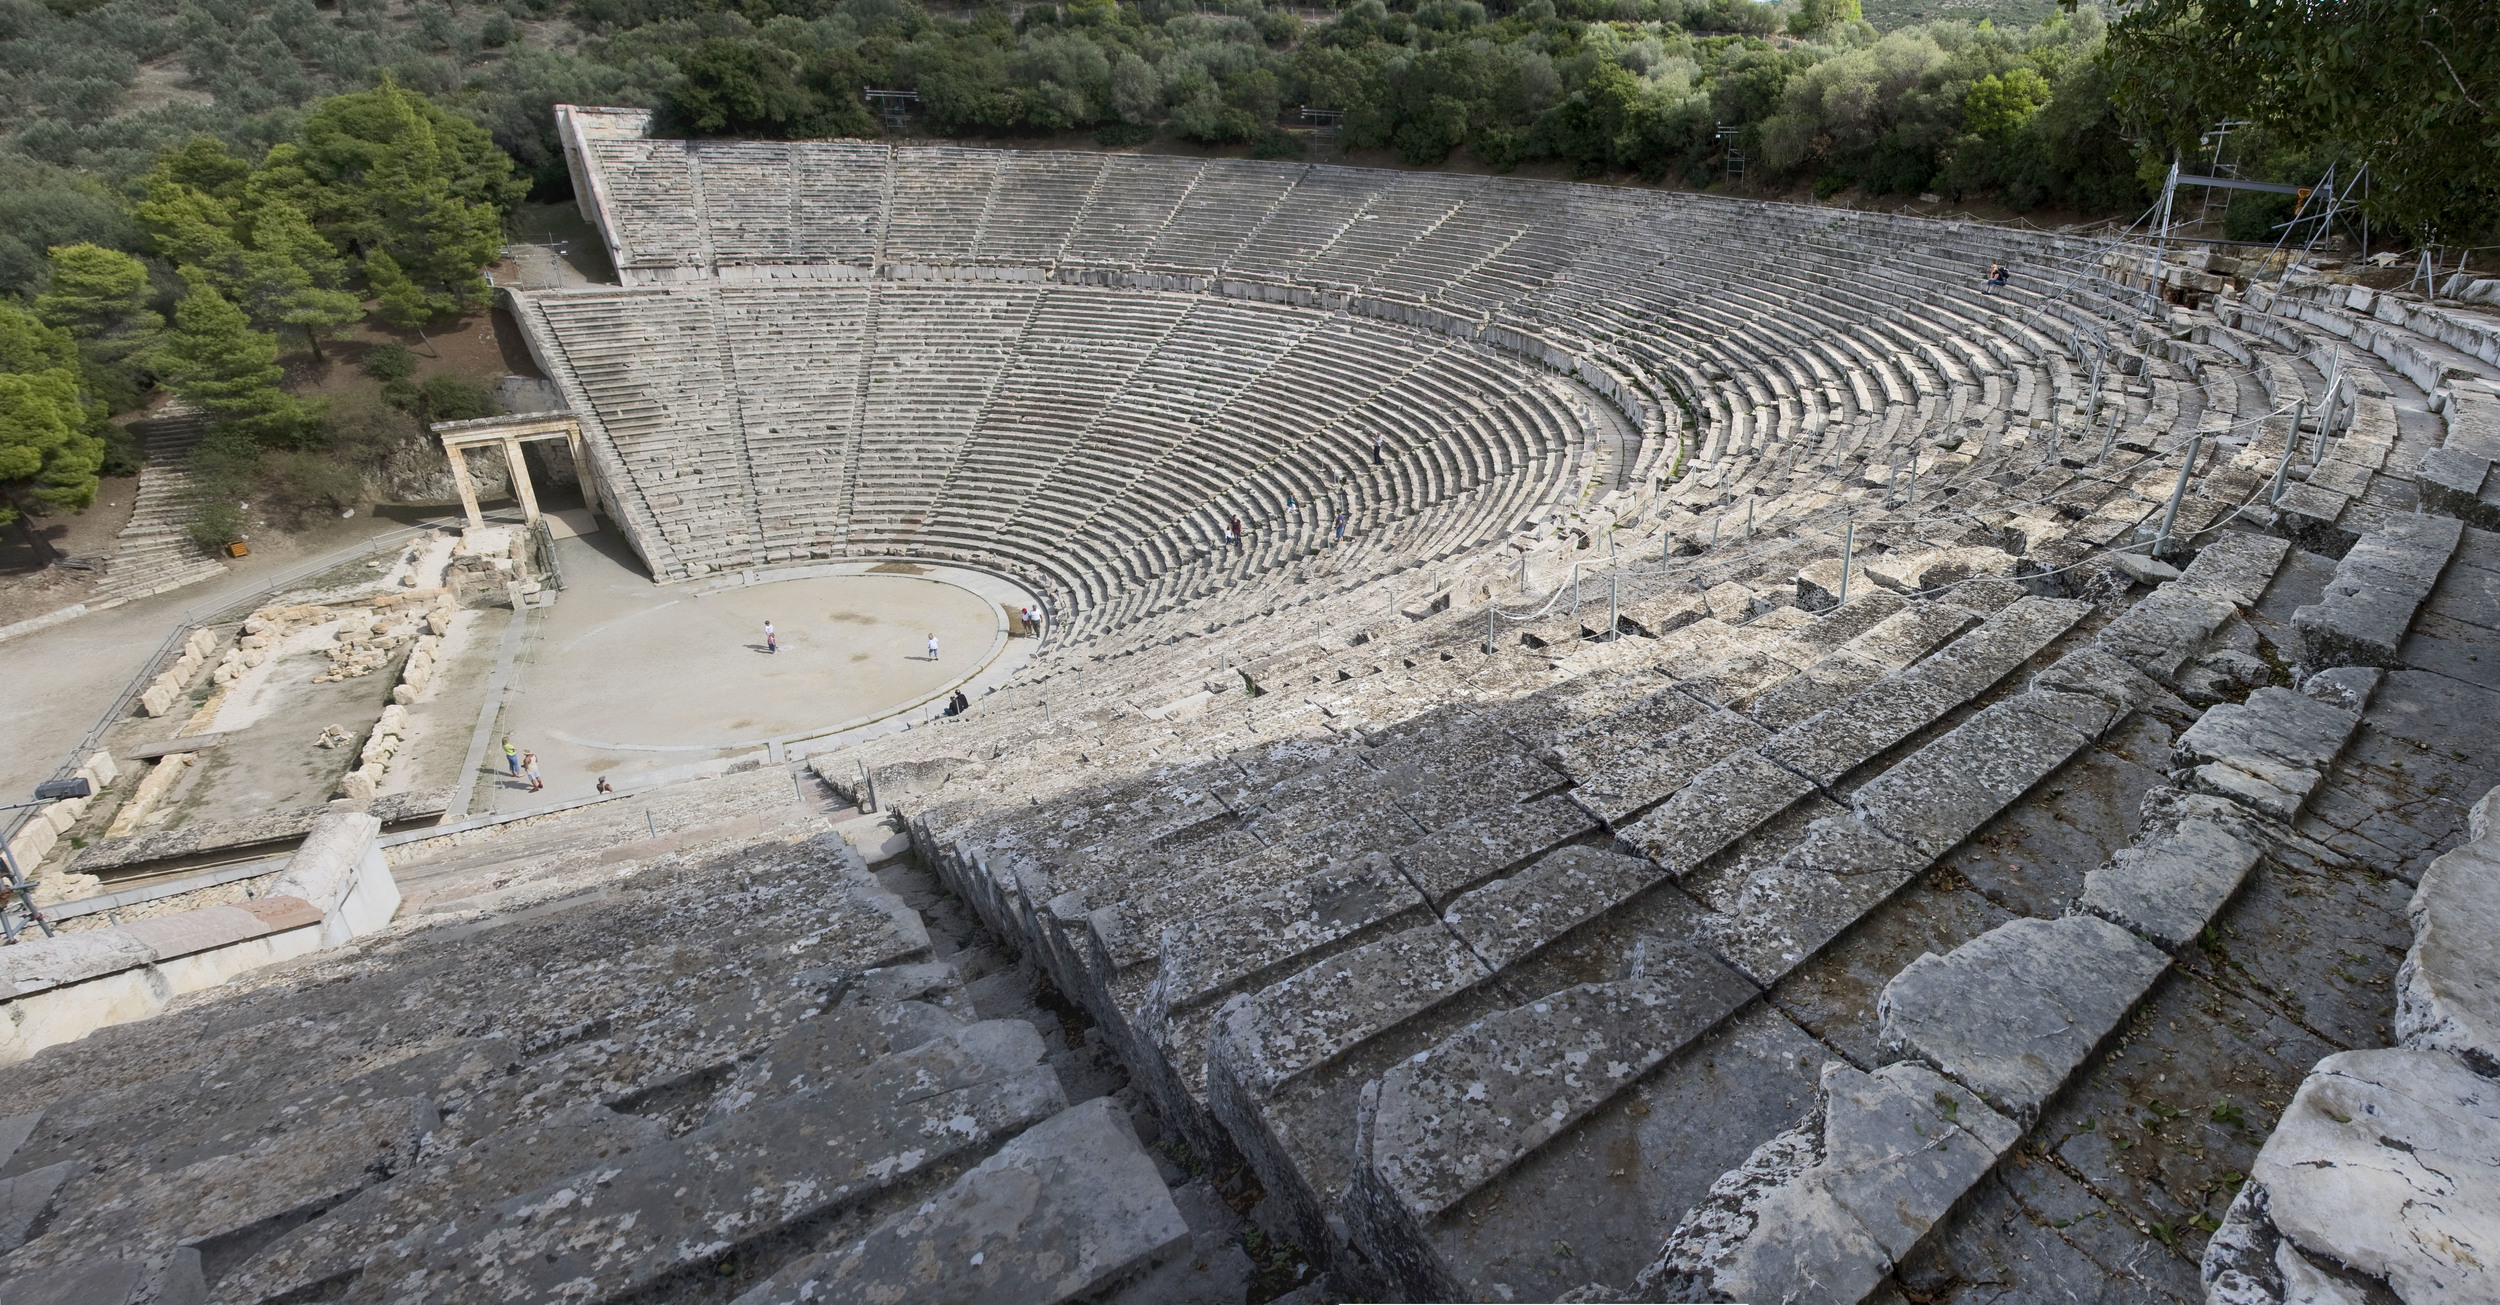 An Image of the Epidaurus Theatre.Image by Andreas Trepte